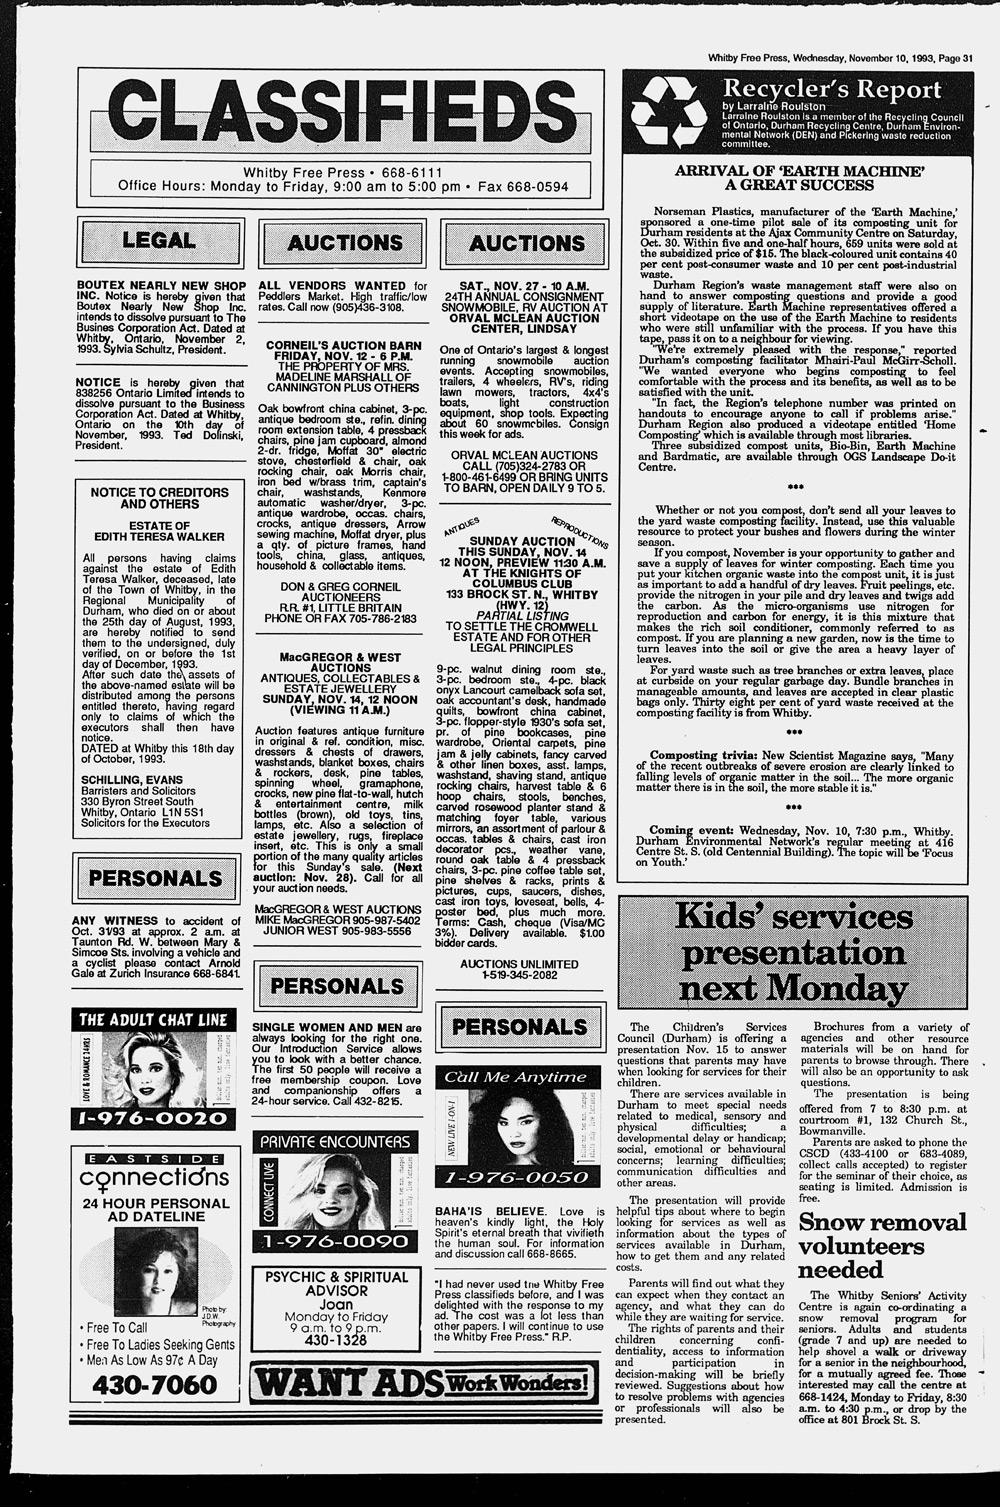 Whitby Free Press, 10 Nov 1993